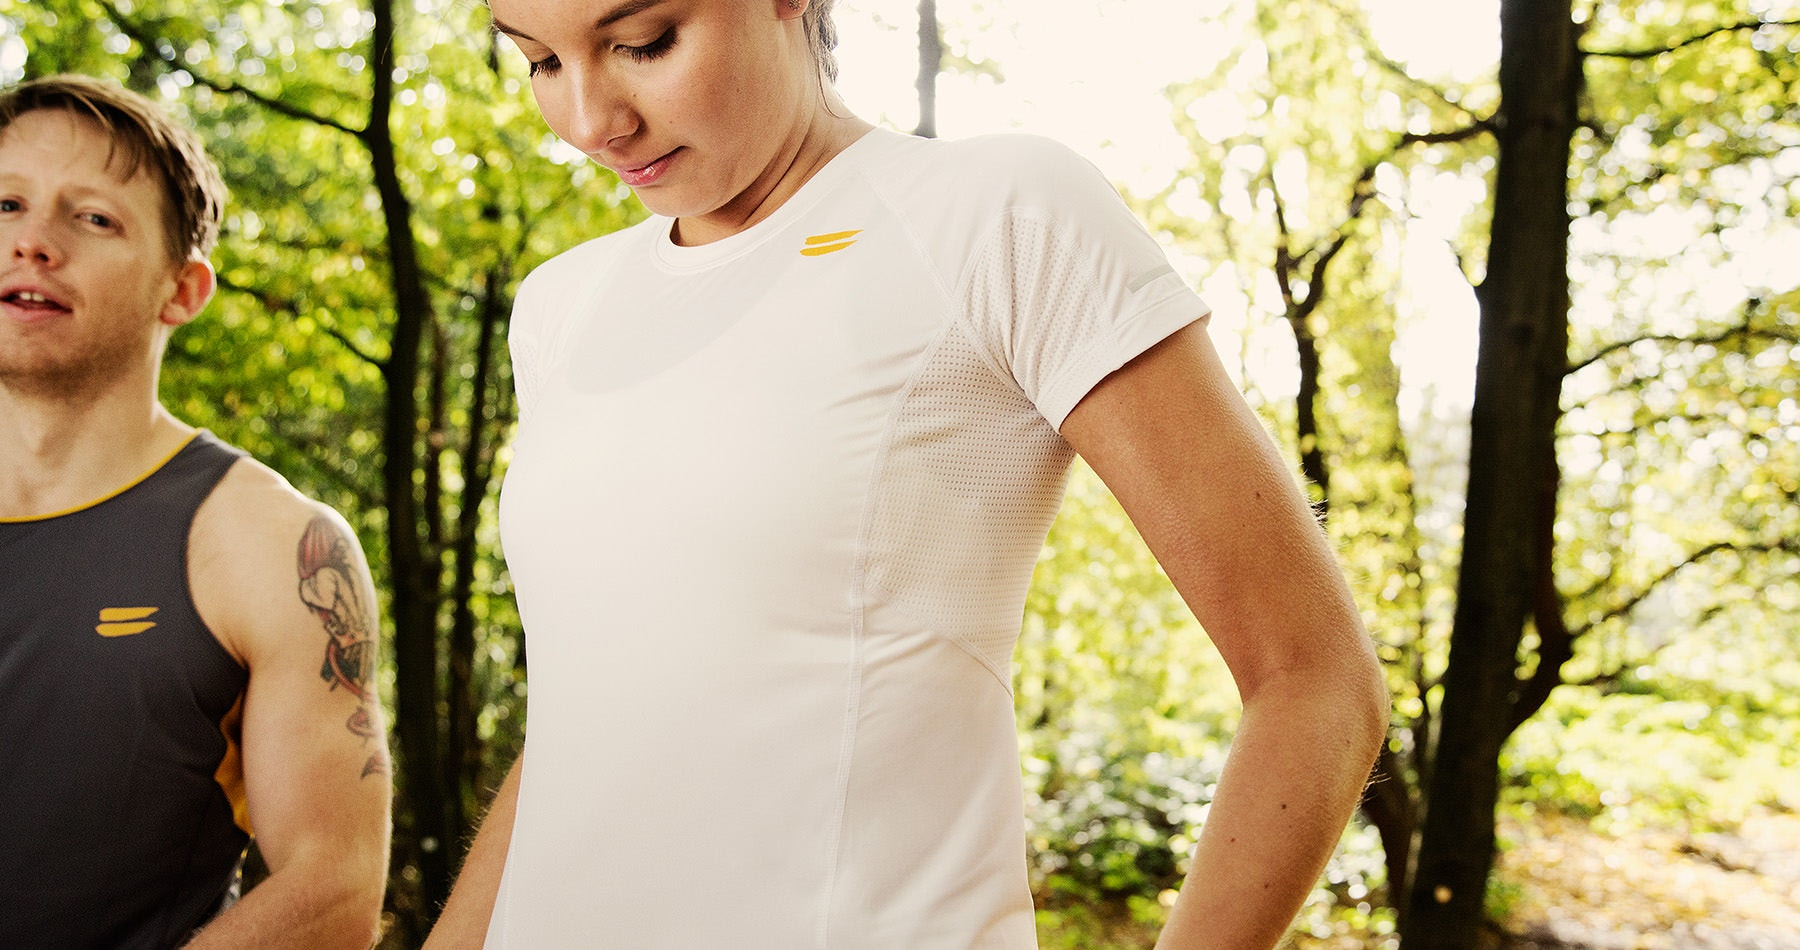 Tribesports Core Women's Short Sleeve Top White 3